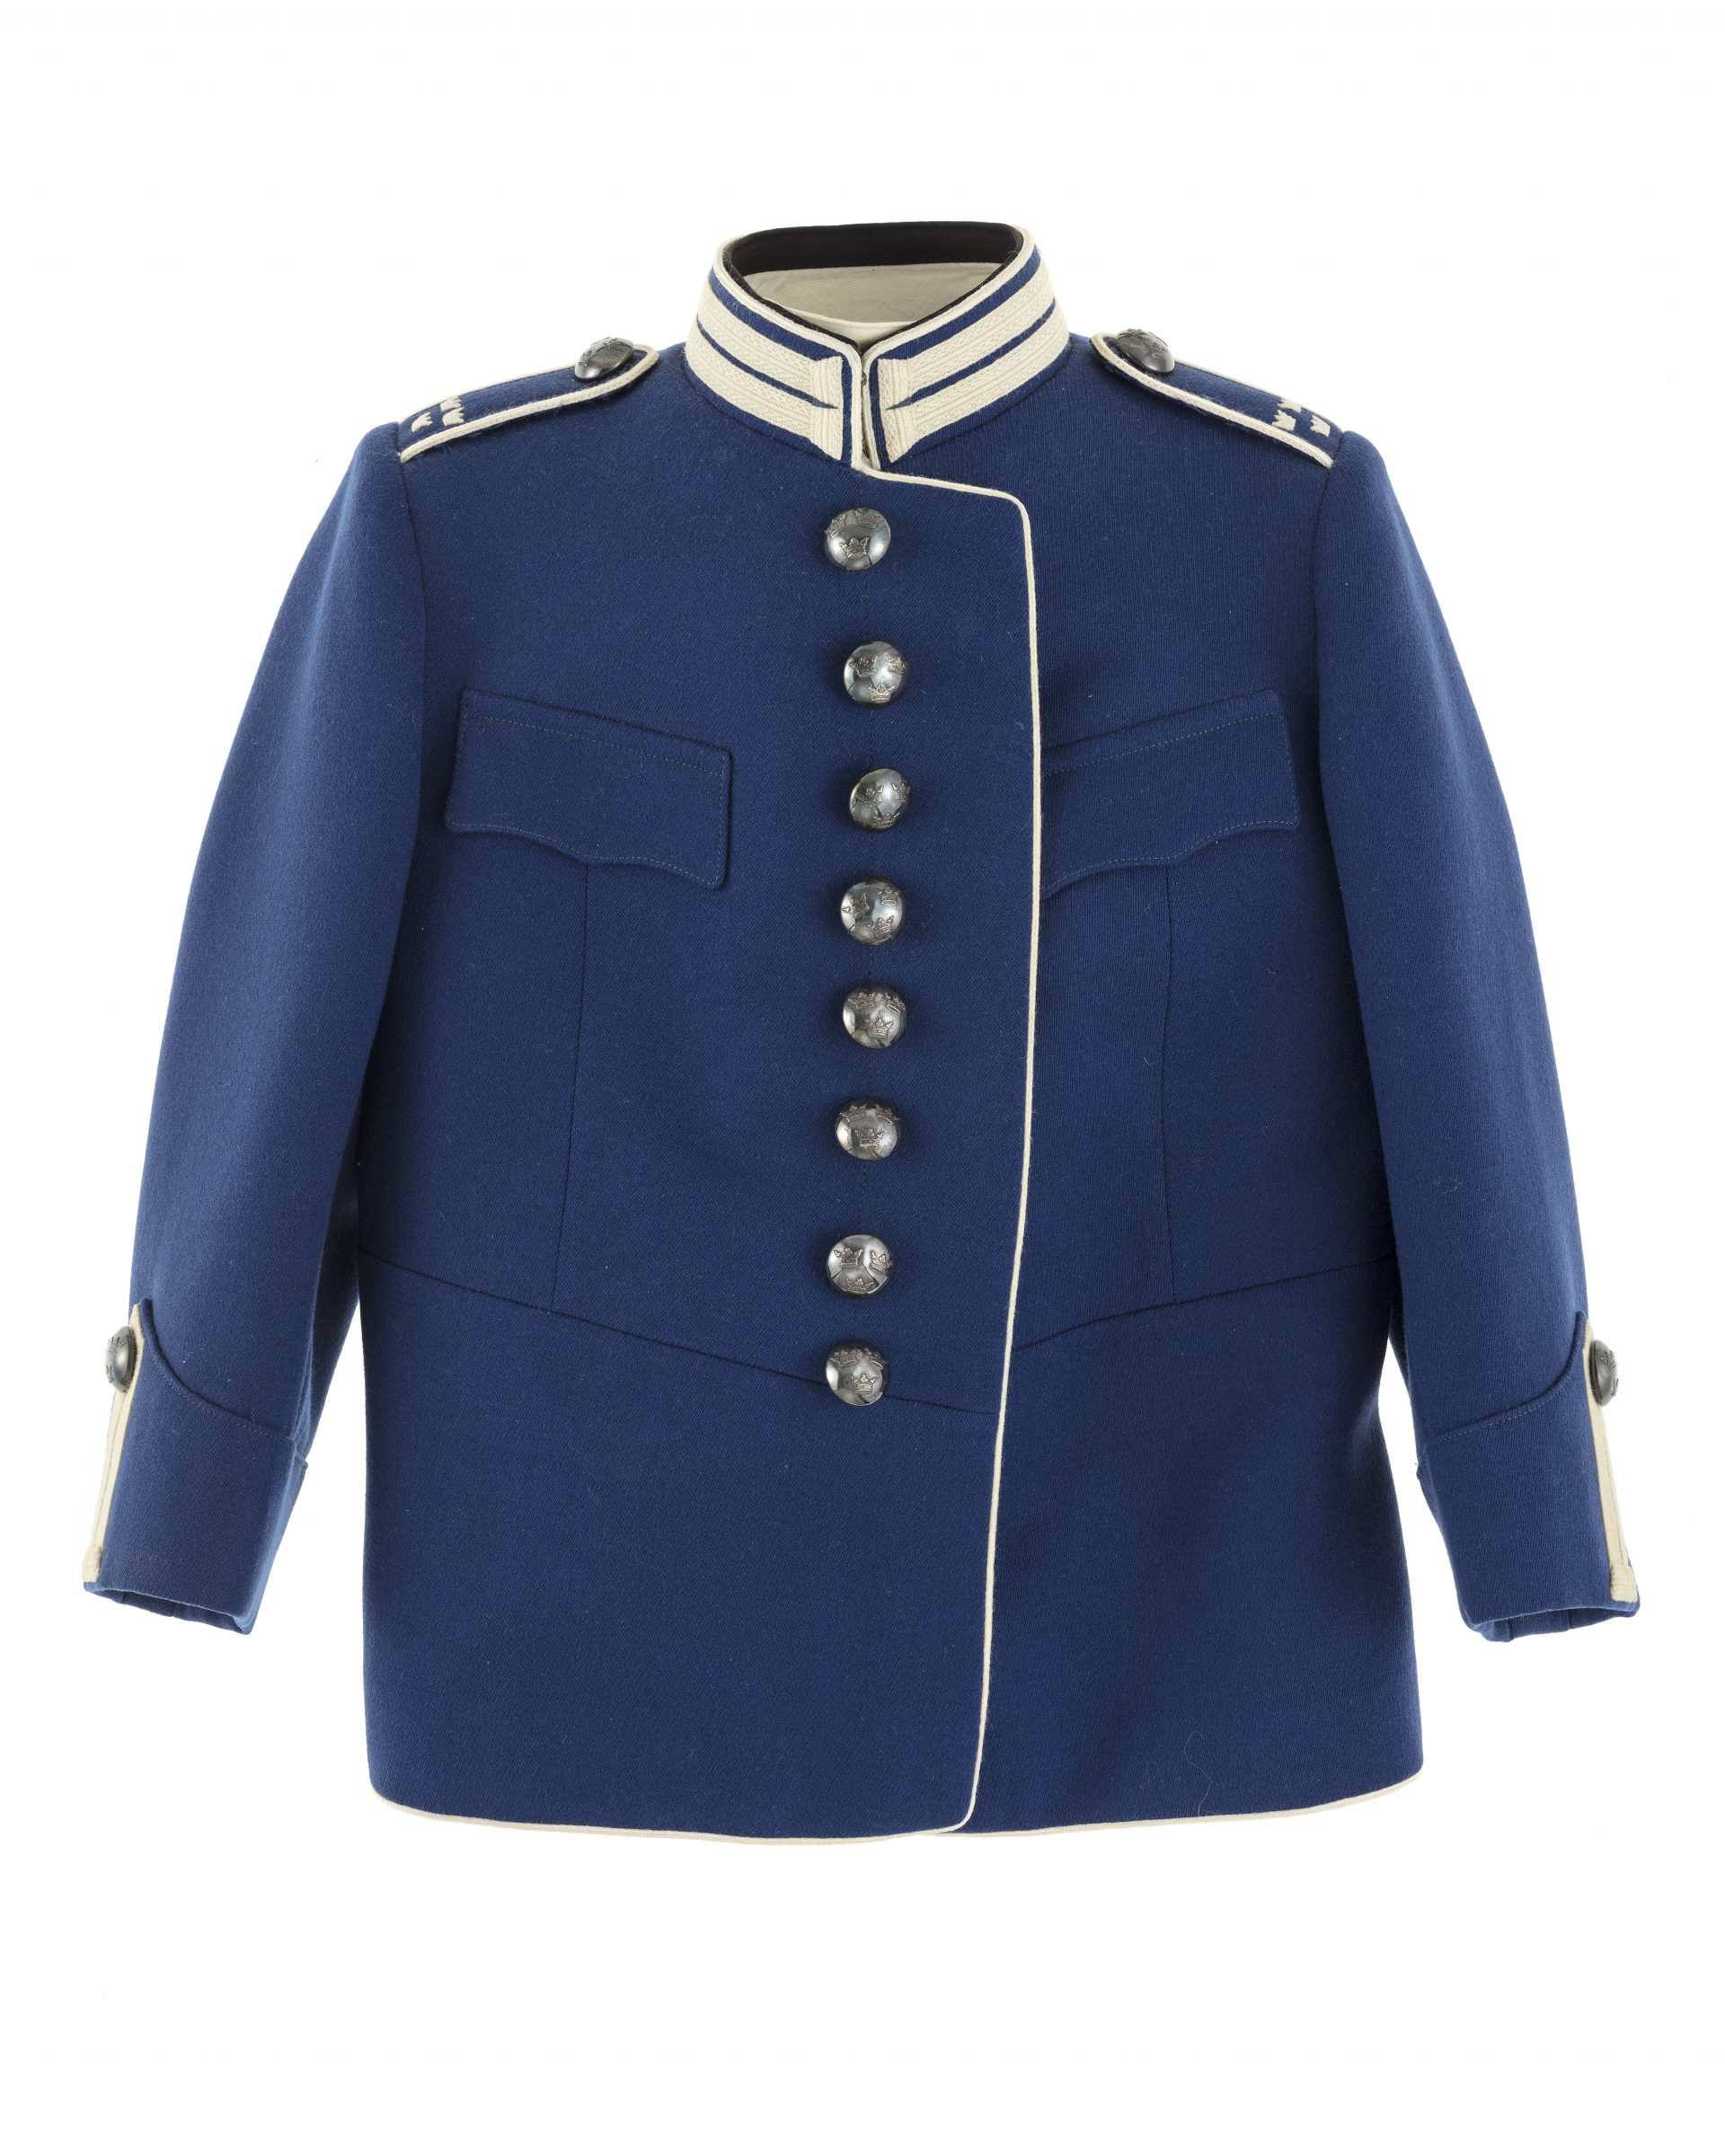 A blue uniform with white trimmings.